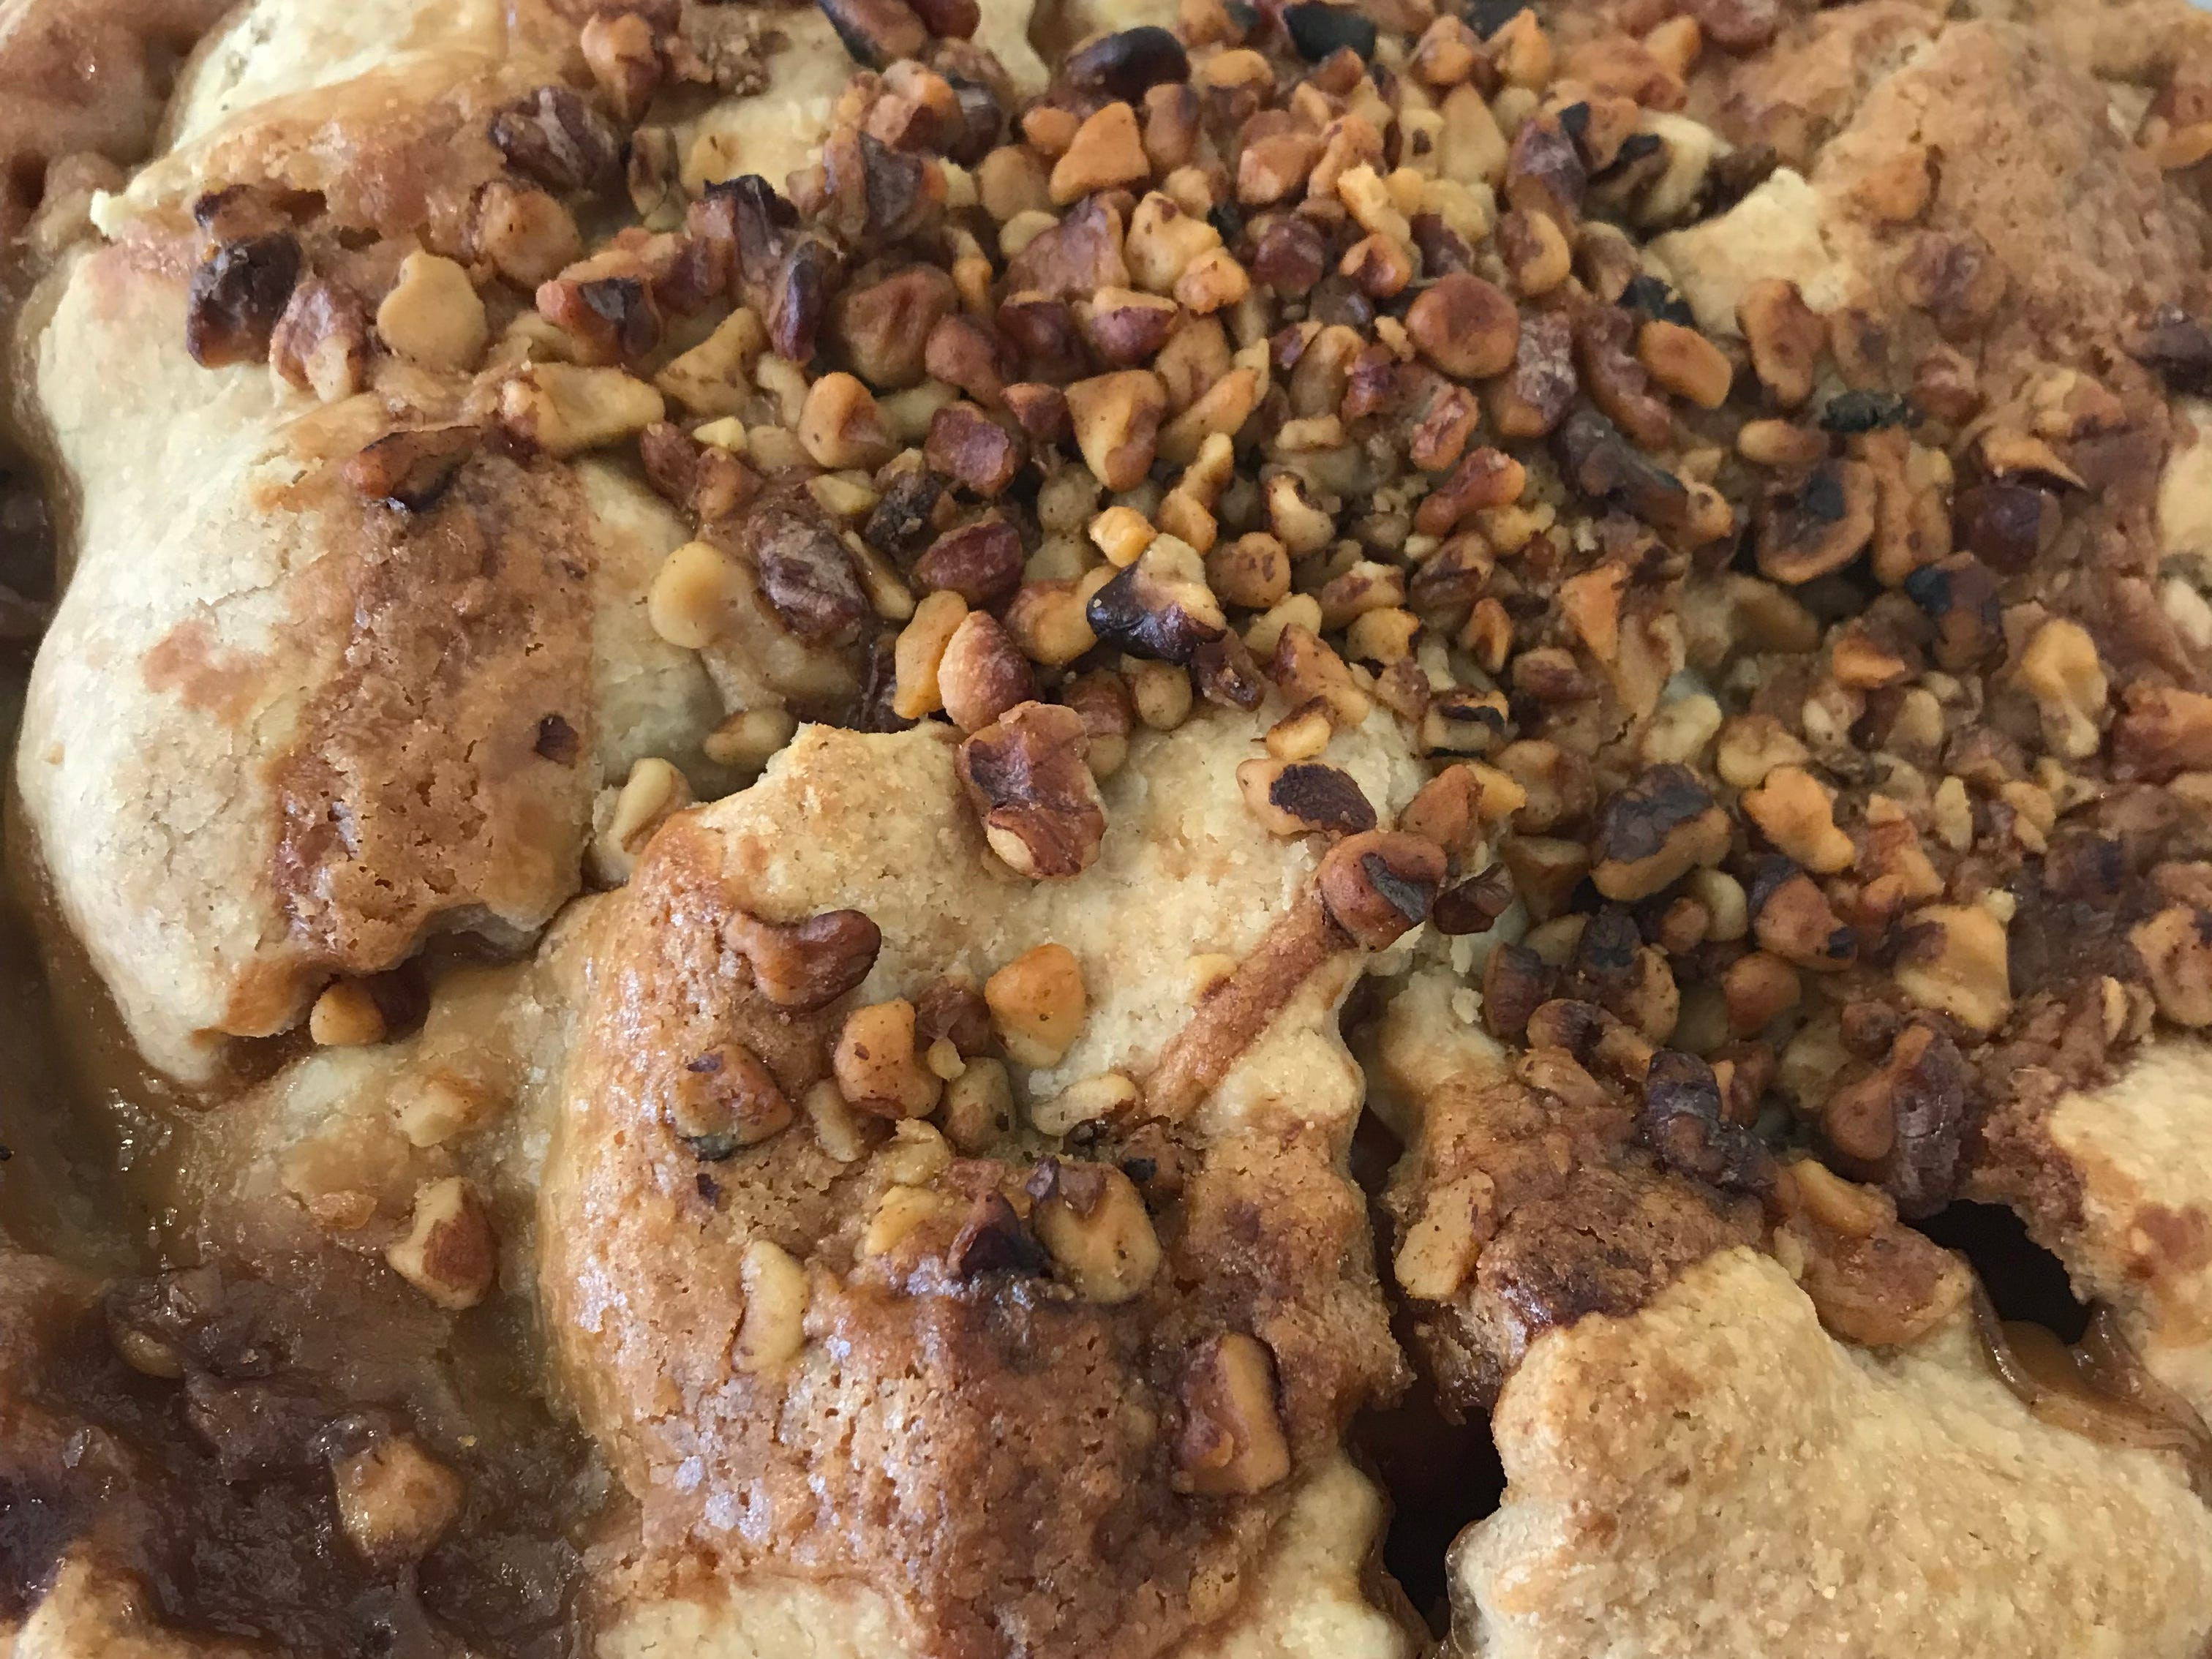 Apple Walnut pie at The Kneaded Bread in Port Chester.